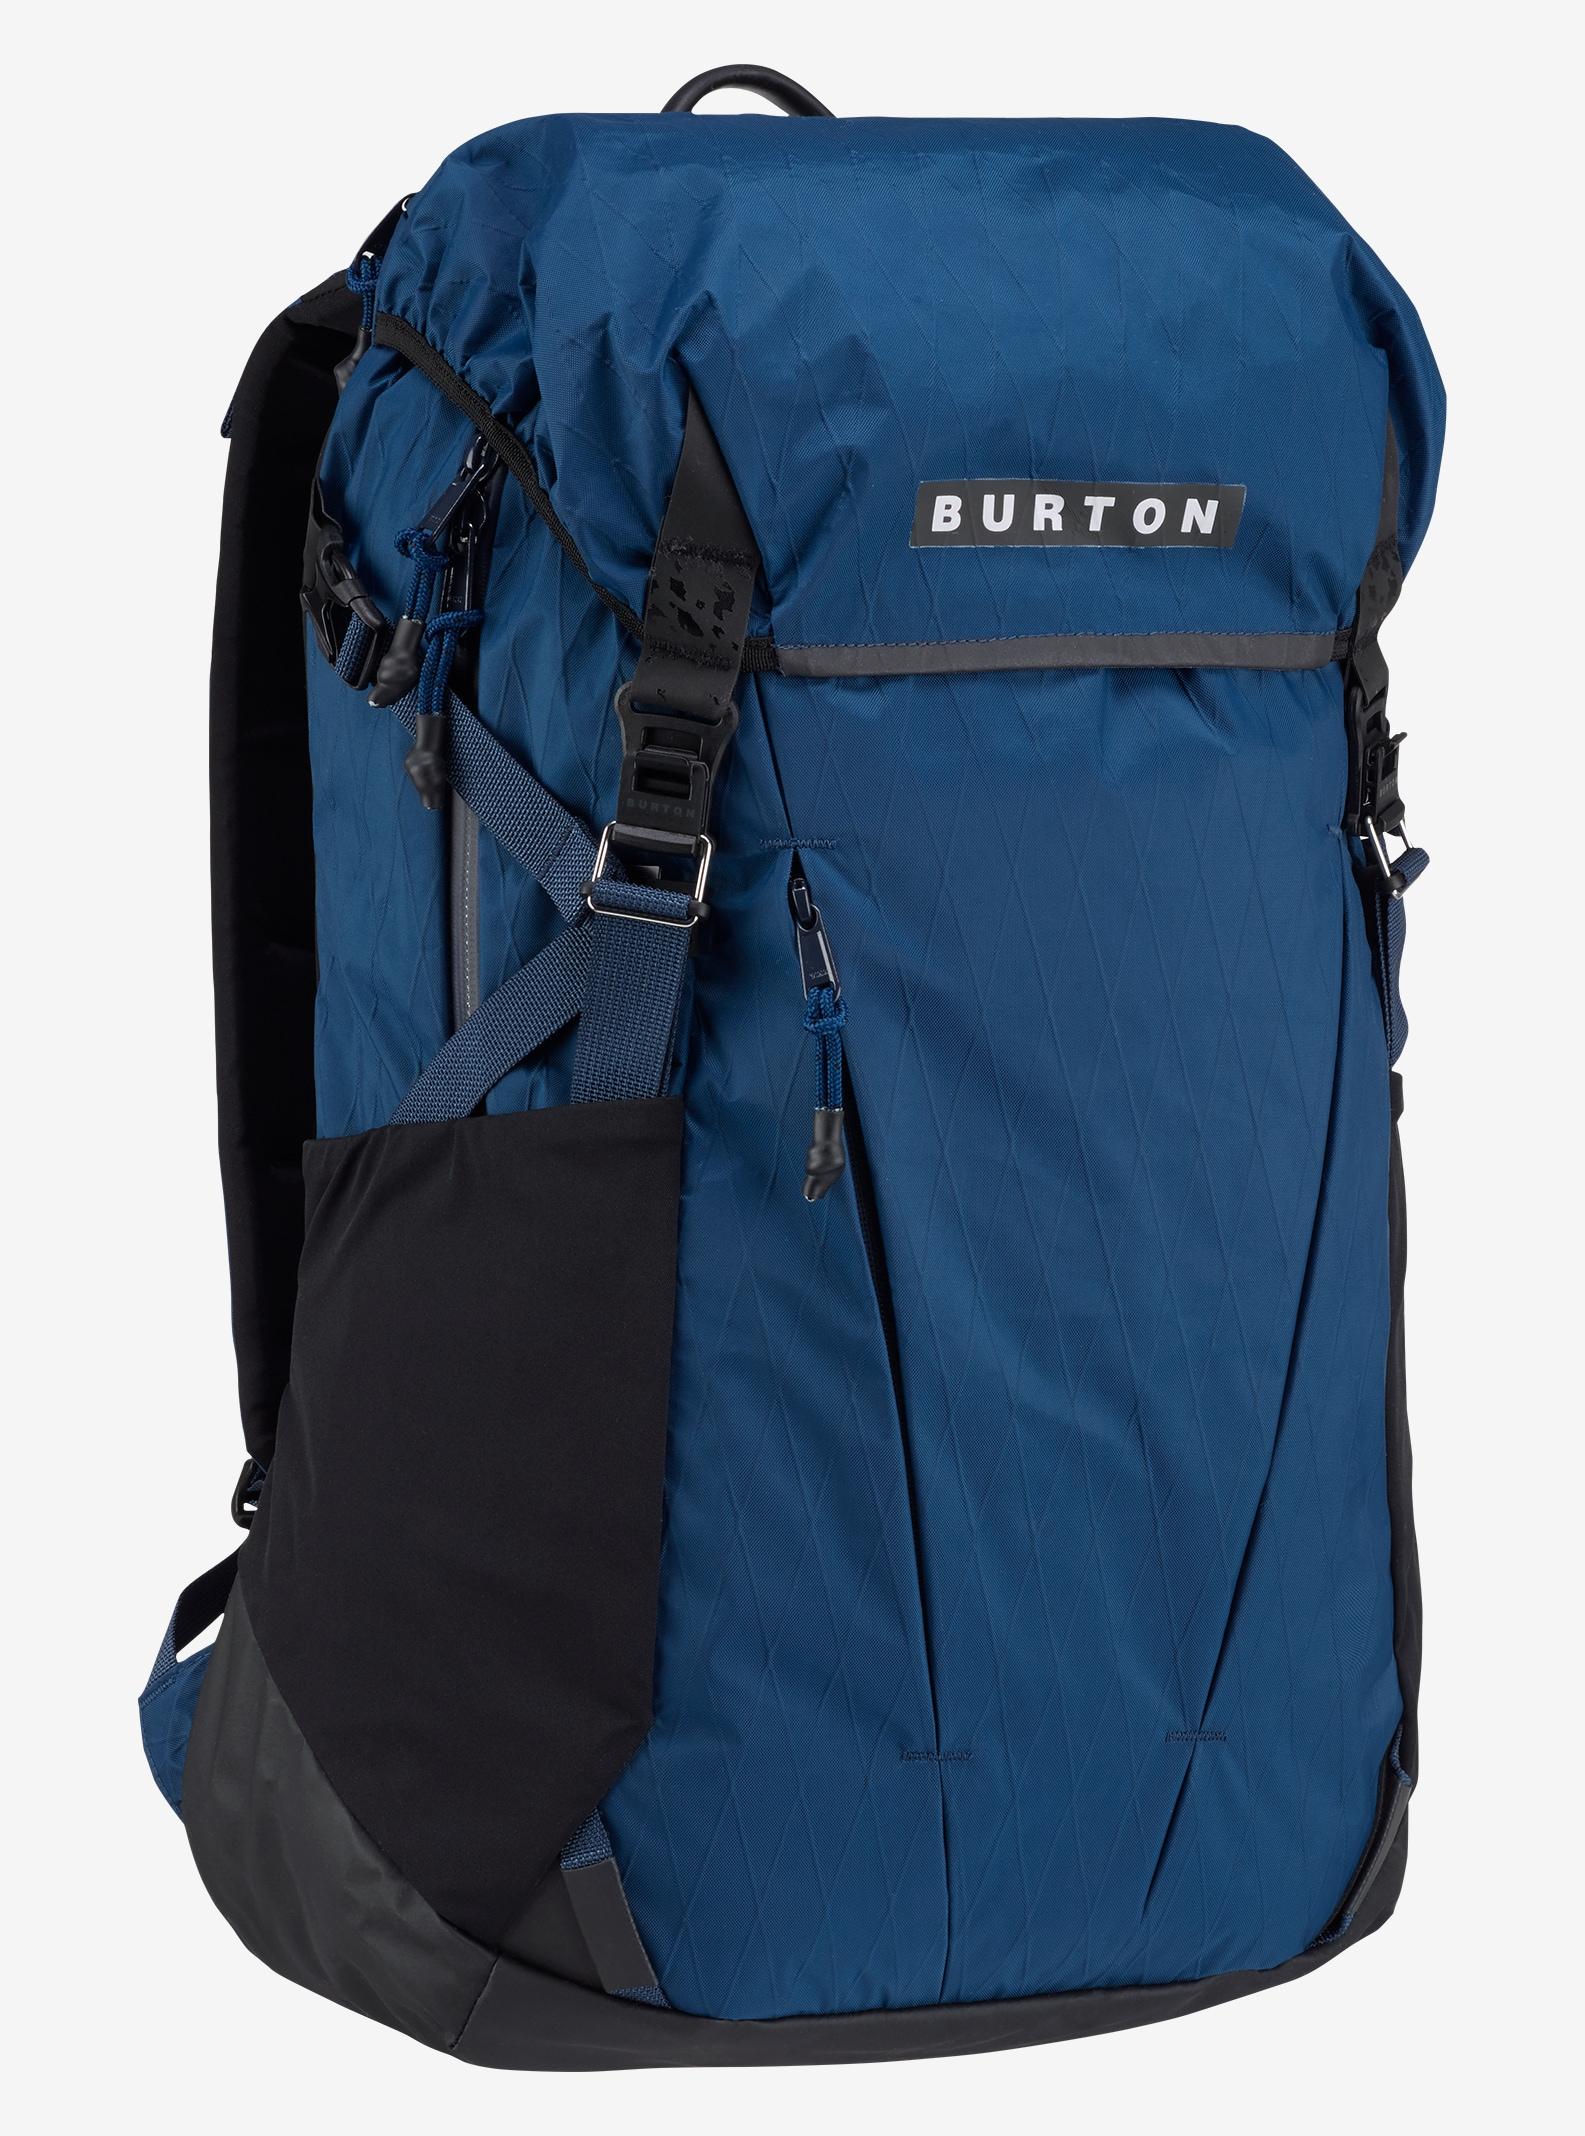 Burton Spruce Backpack shown in Eclipse X-Pac™